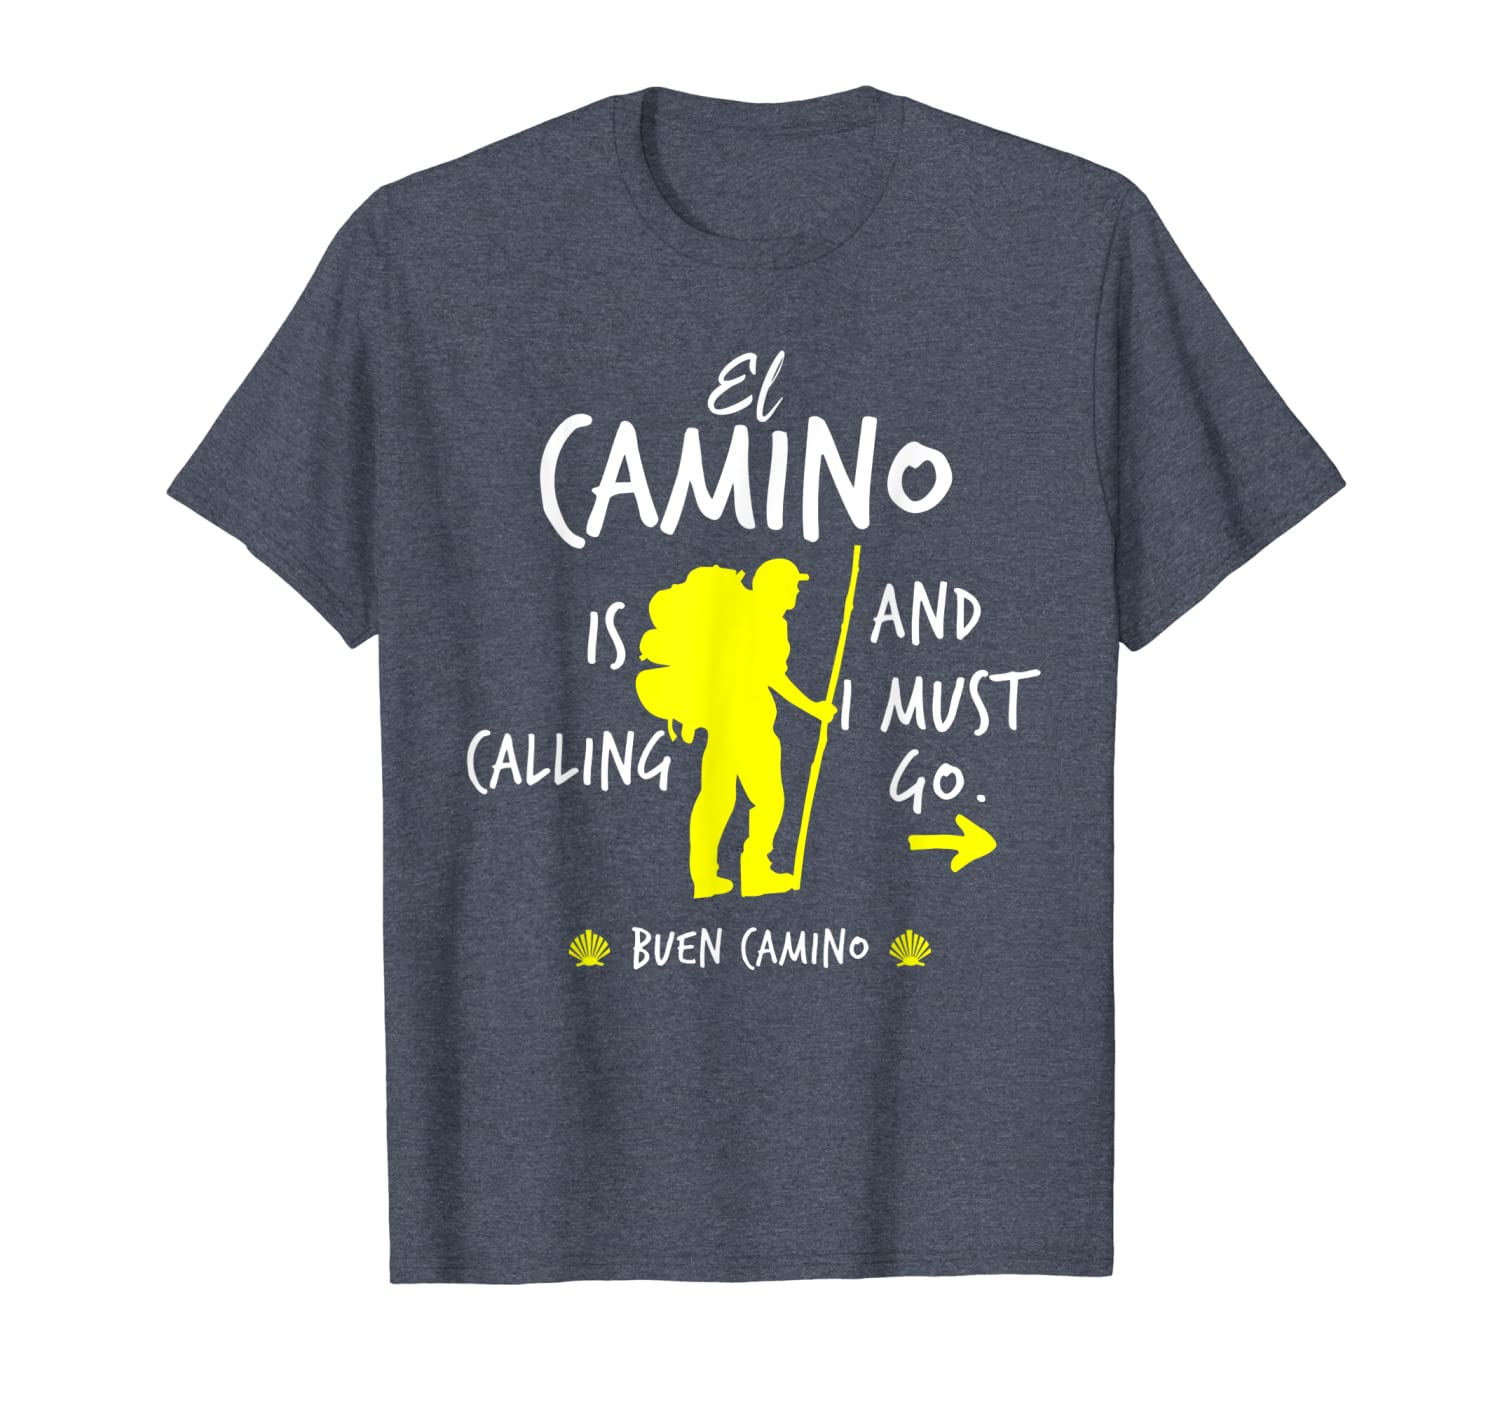 Amazon.com: El Camino Is Calling And I Must Go Santiago ...